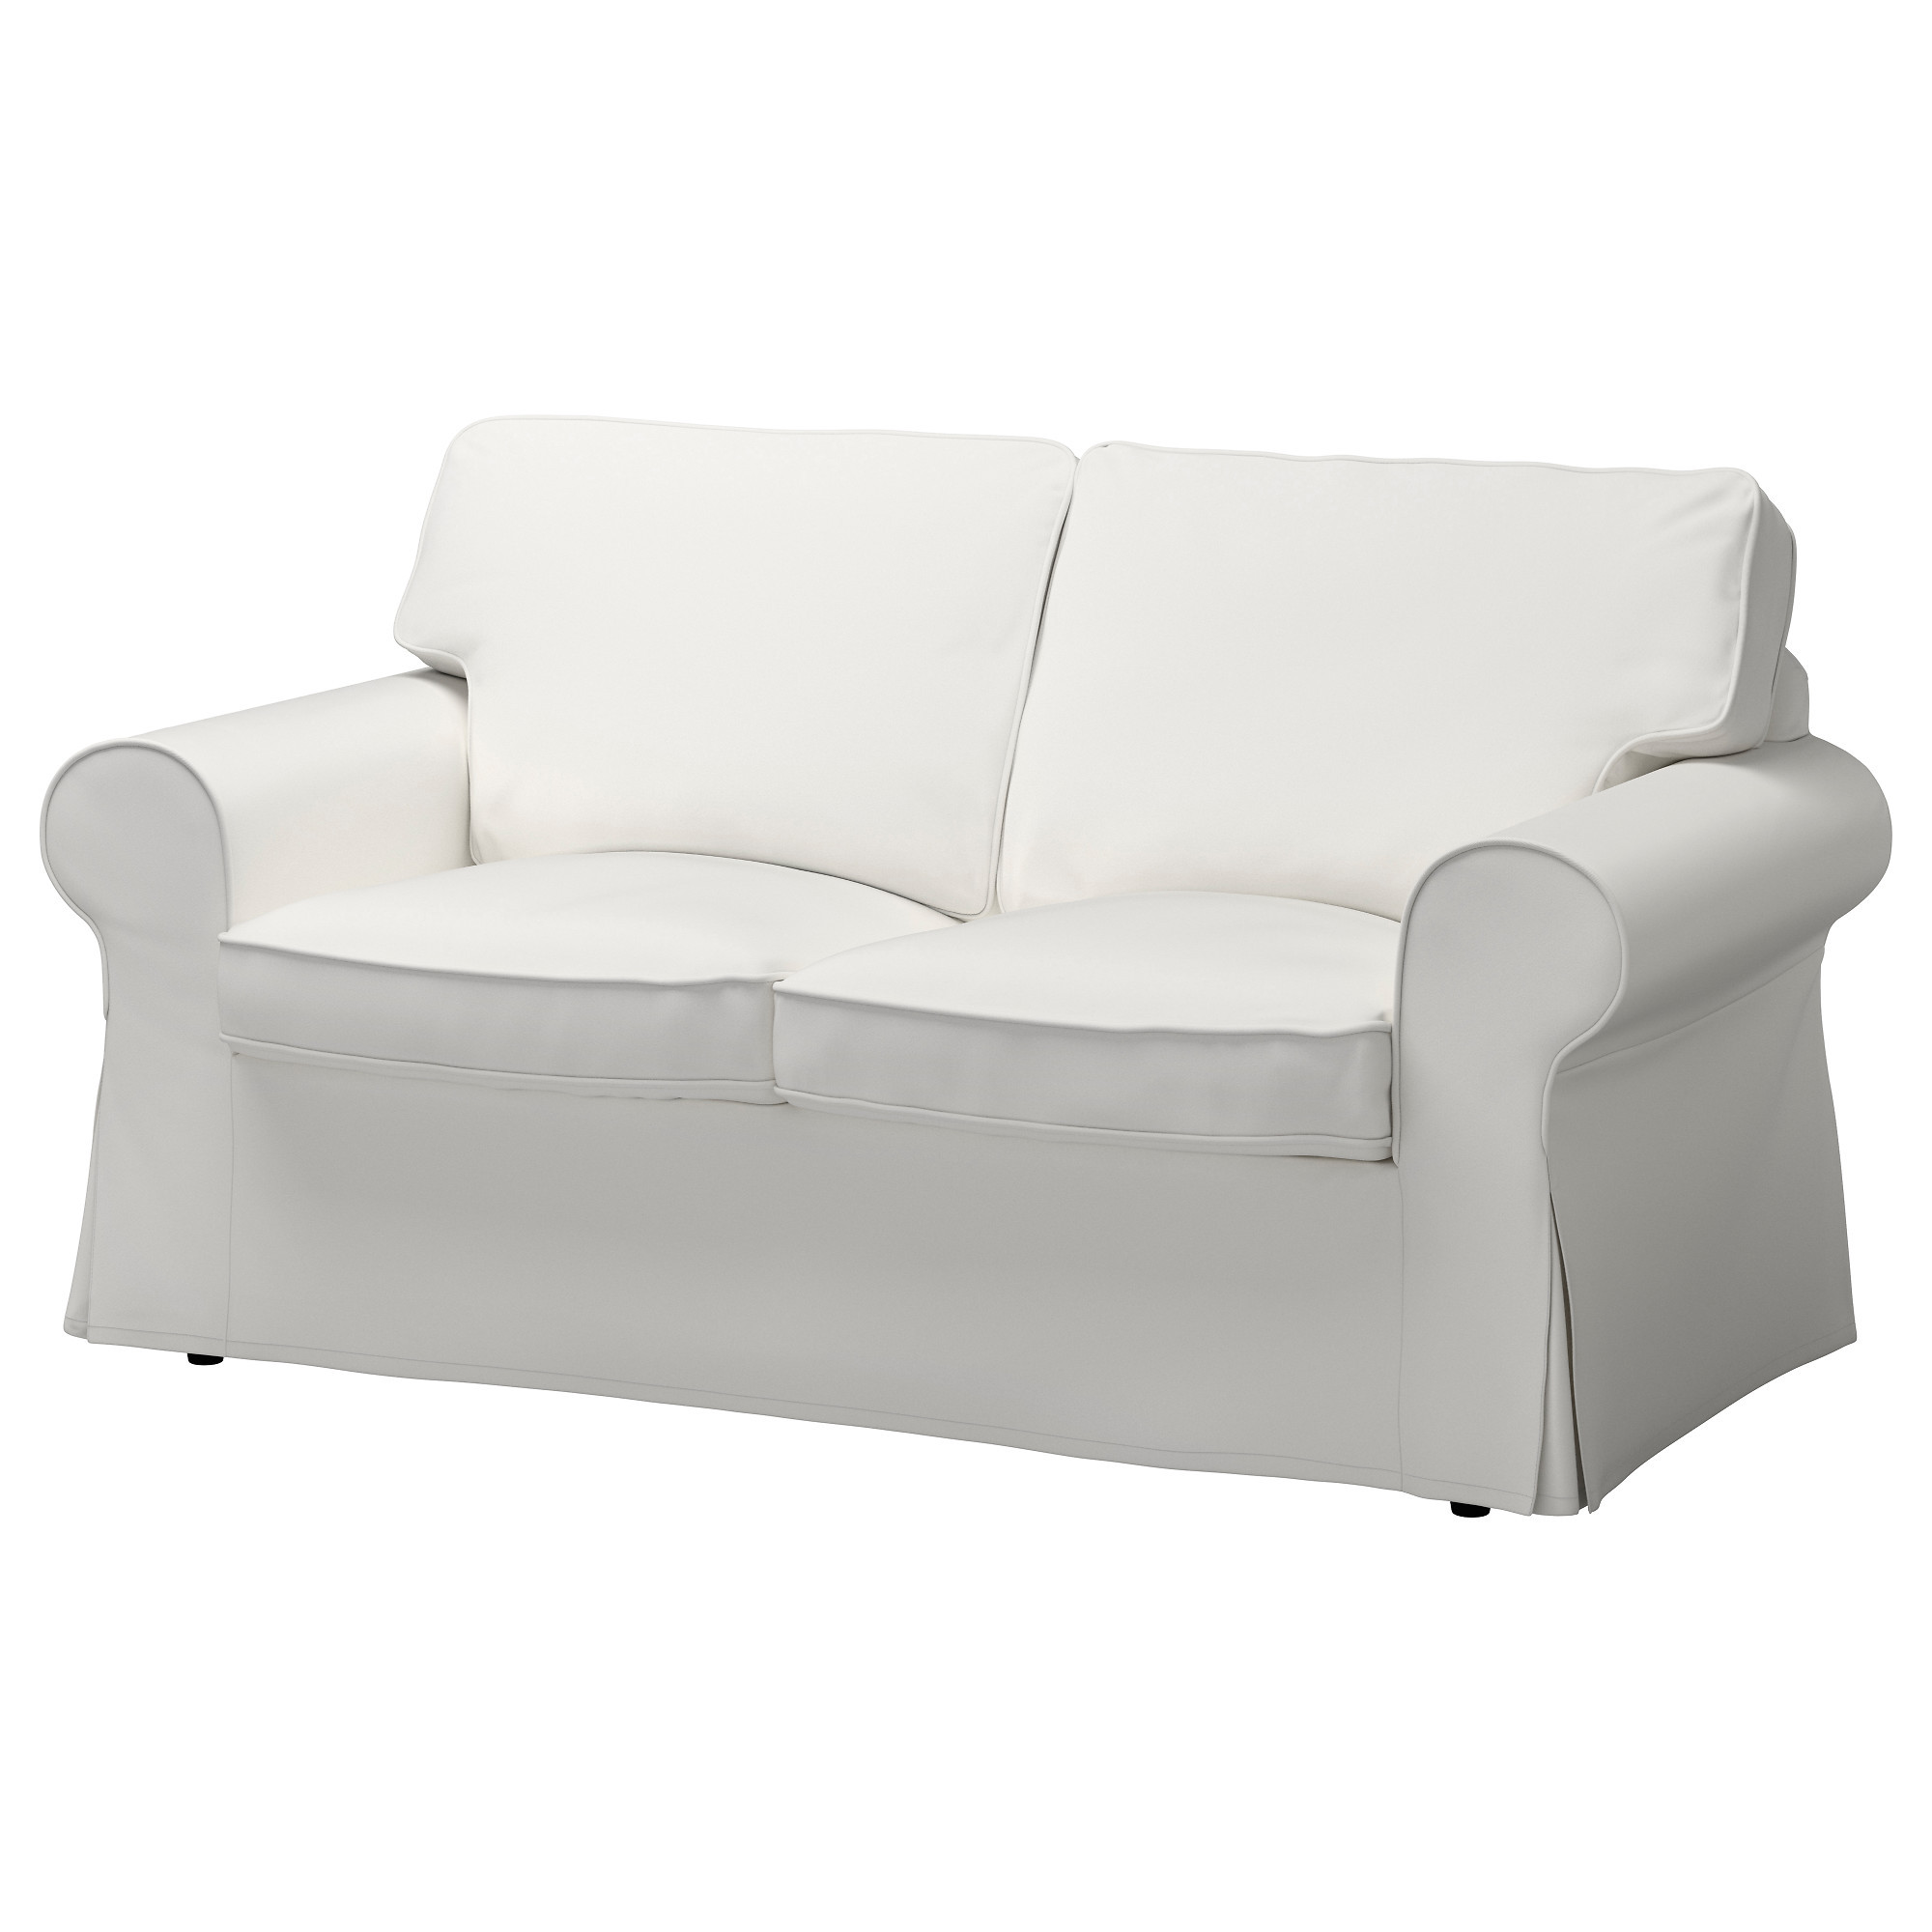 The Best Ideas for Ikea Sleeper sofa   Best Collections ...